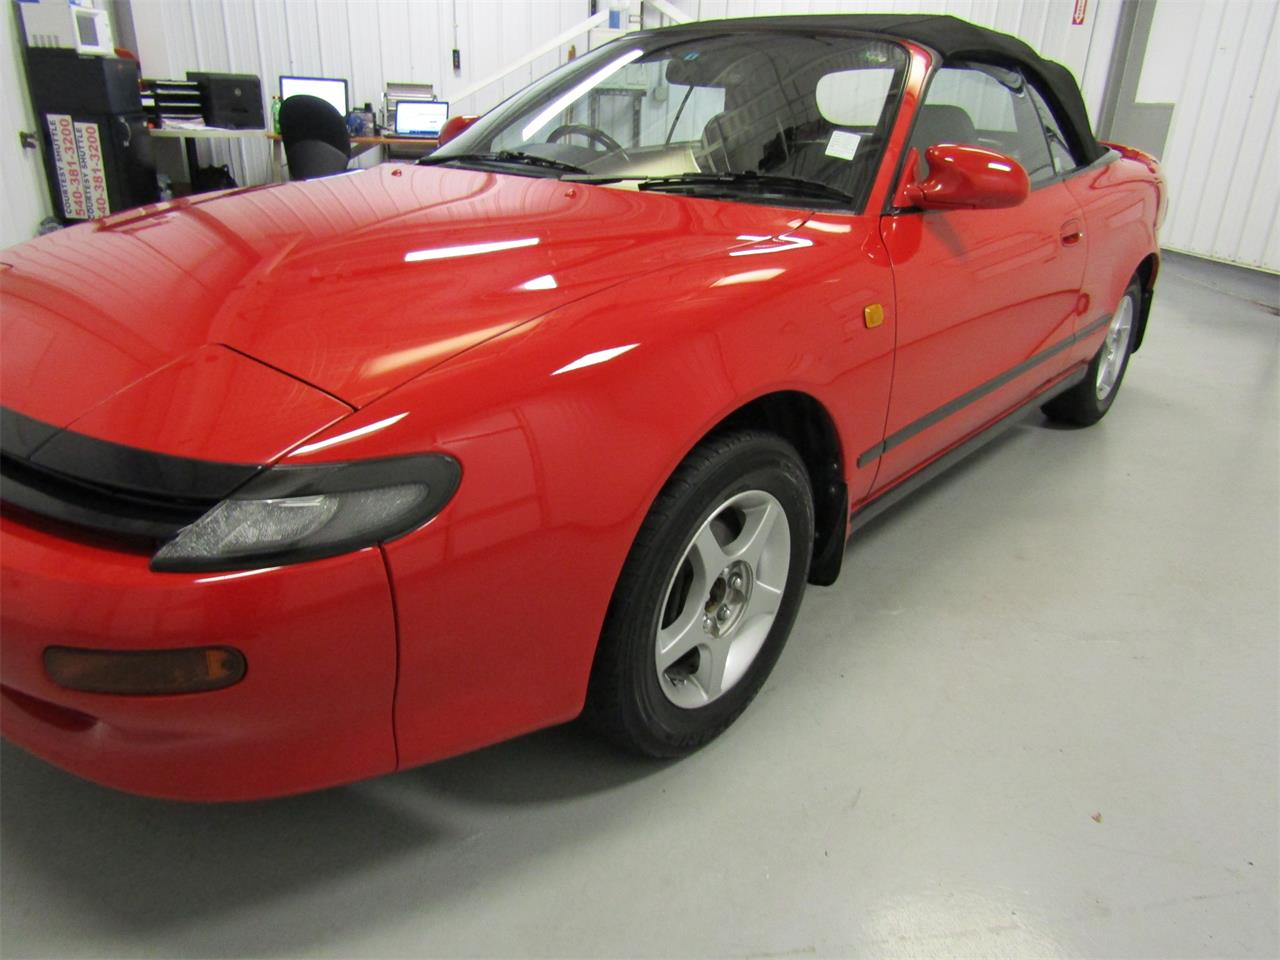 Large Picture of '91 Celica located in Virginia - $9,999.00 Offered by Duncan Imports & Classic Cars - OV71